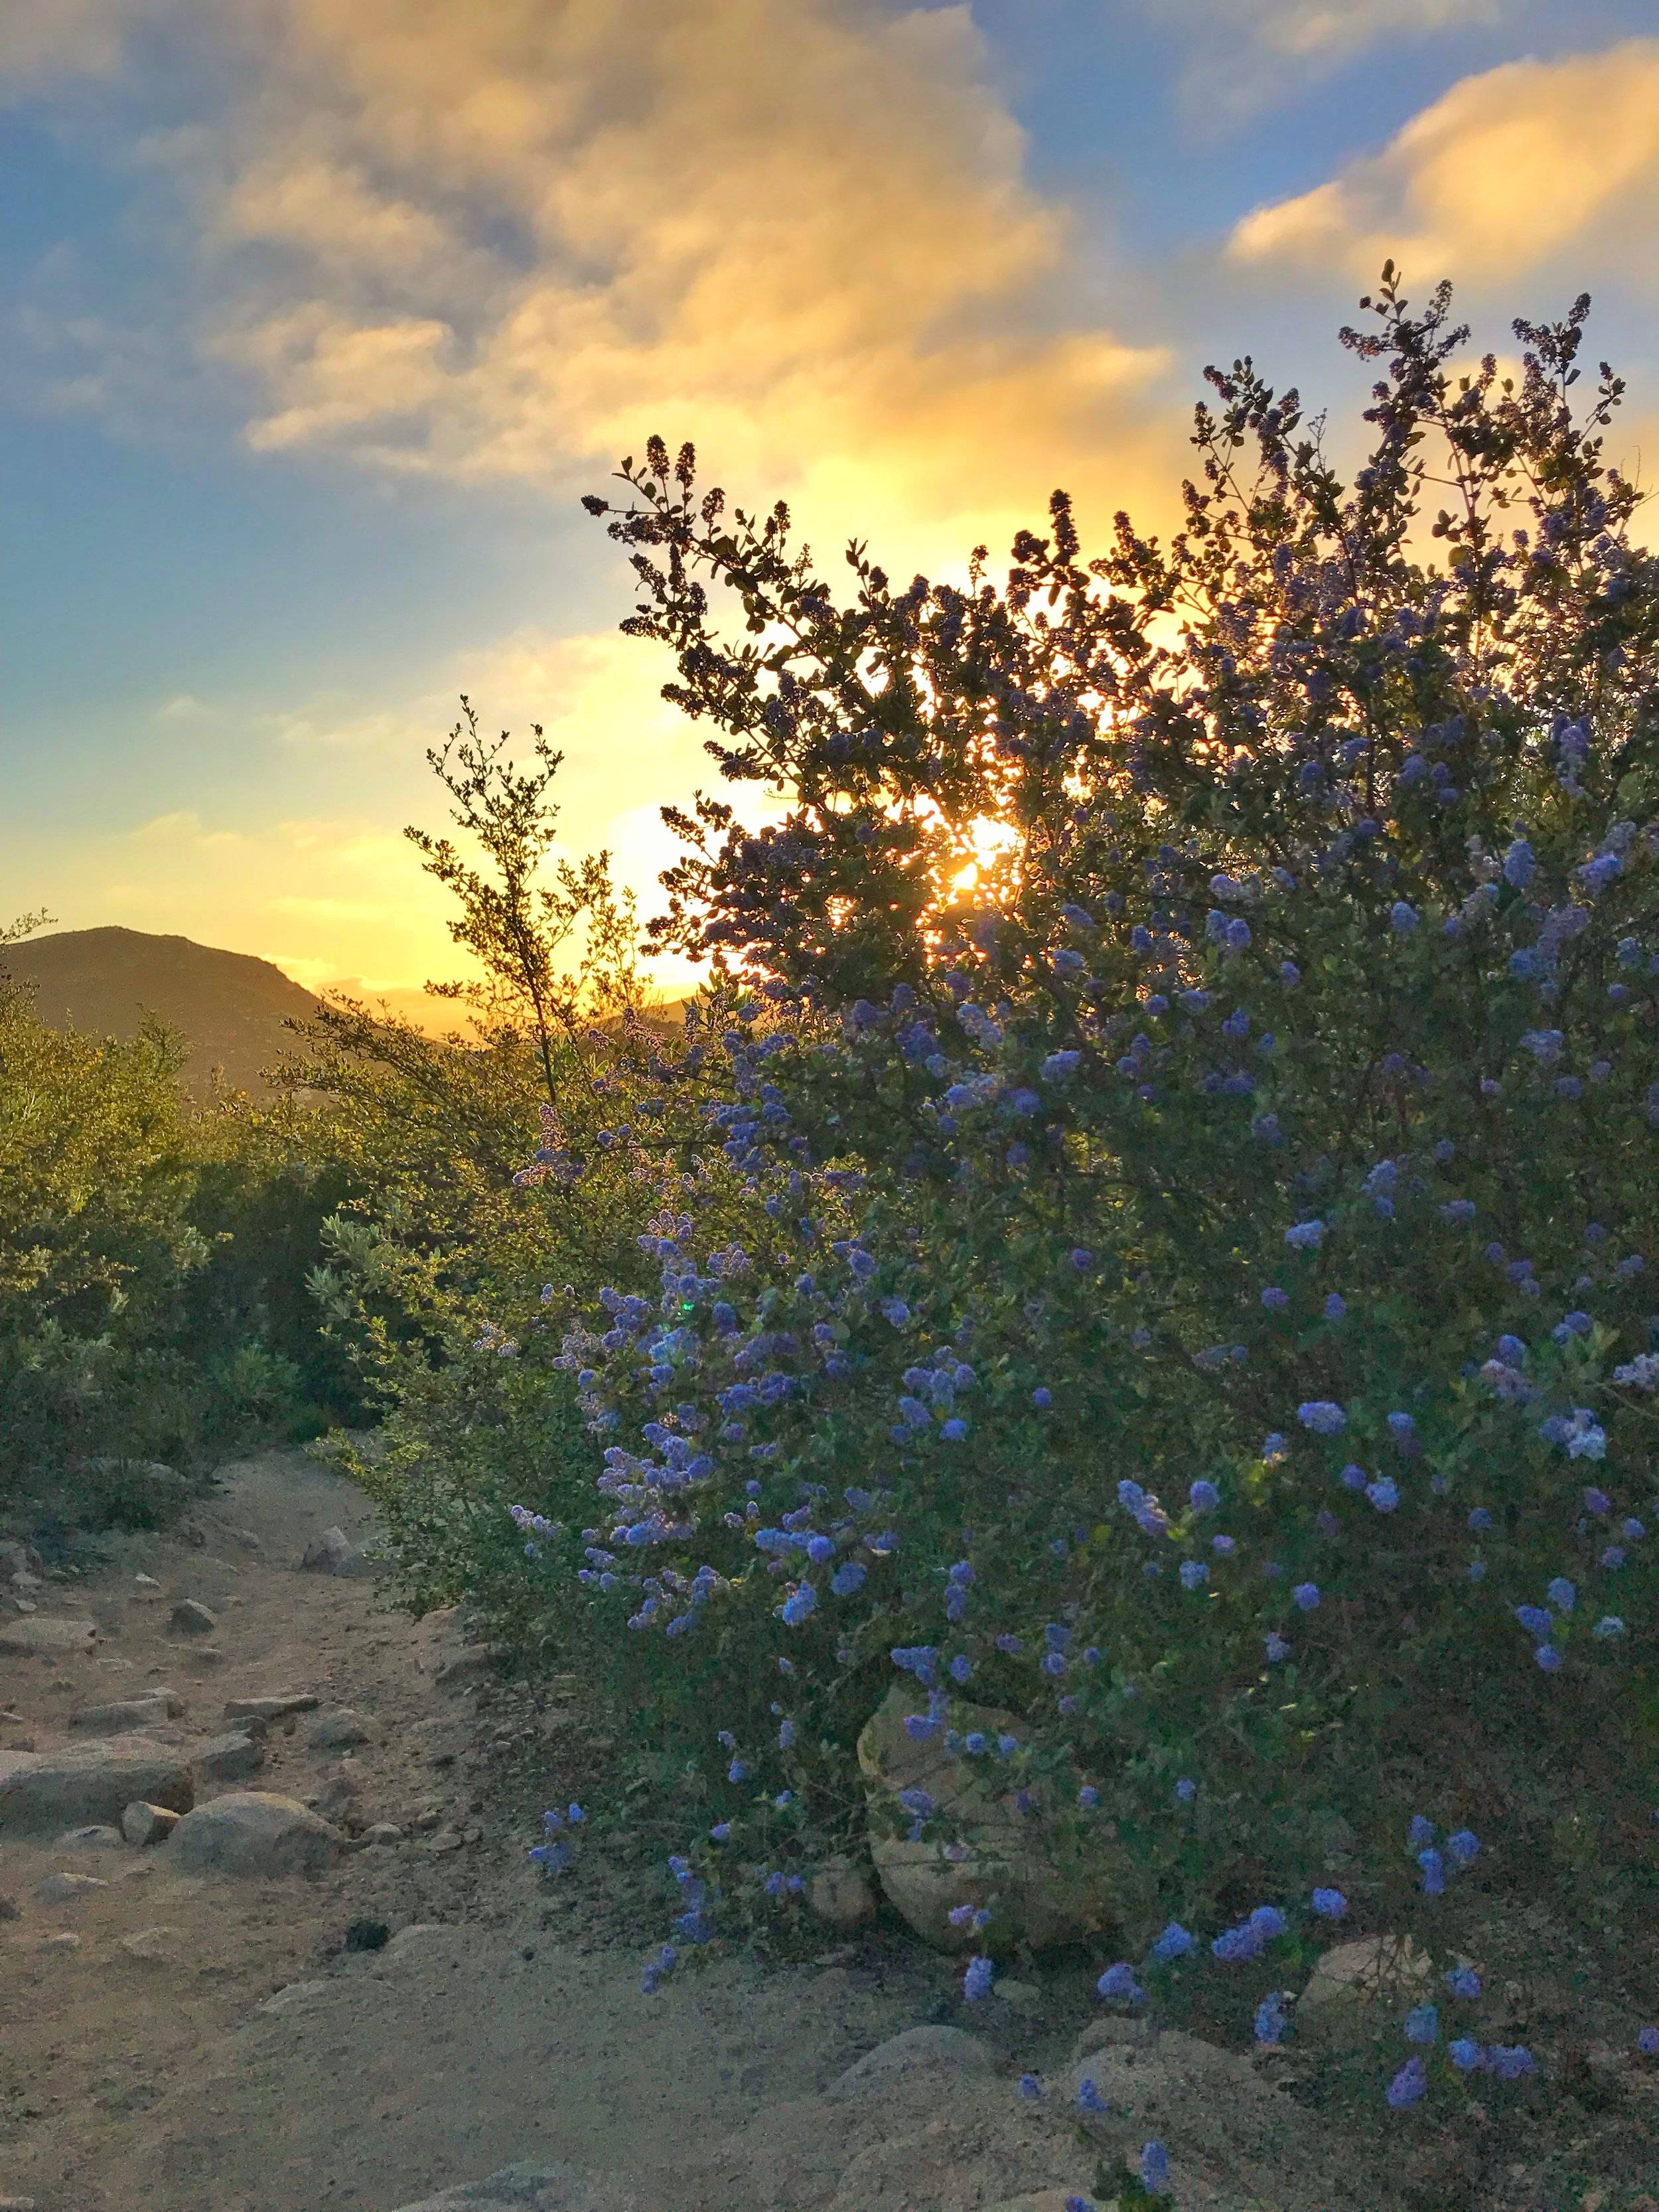 During the spring, hikers will be treated to a number of wildflowers blooming at, or along the trail.